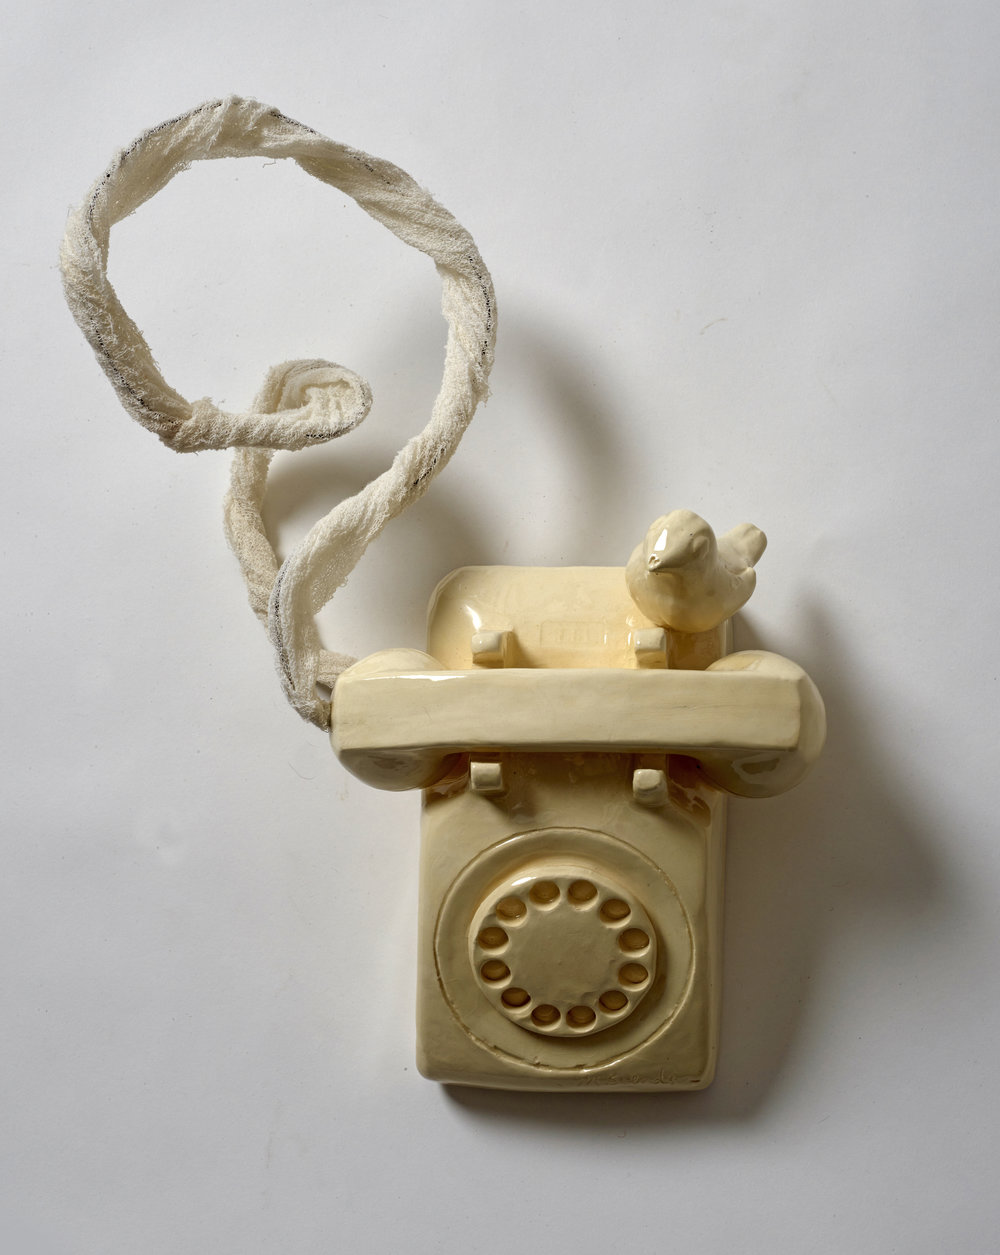 Hand, Bird, Phone 2  ceramic  16x10x4